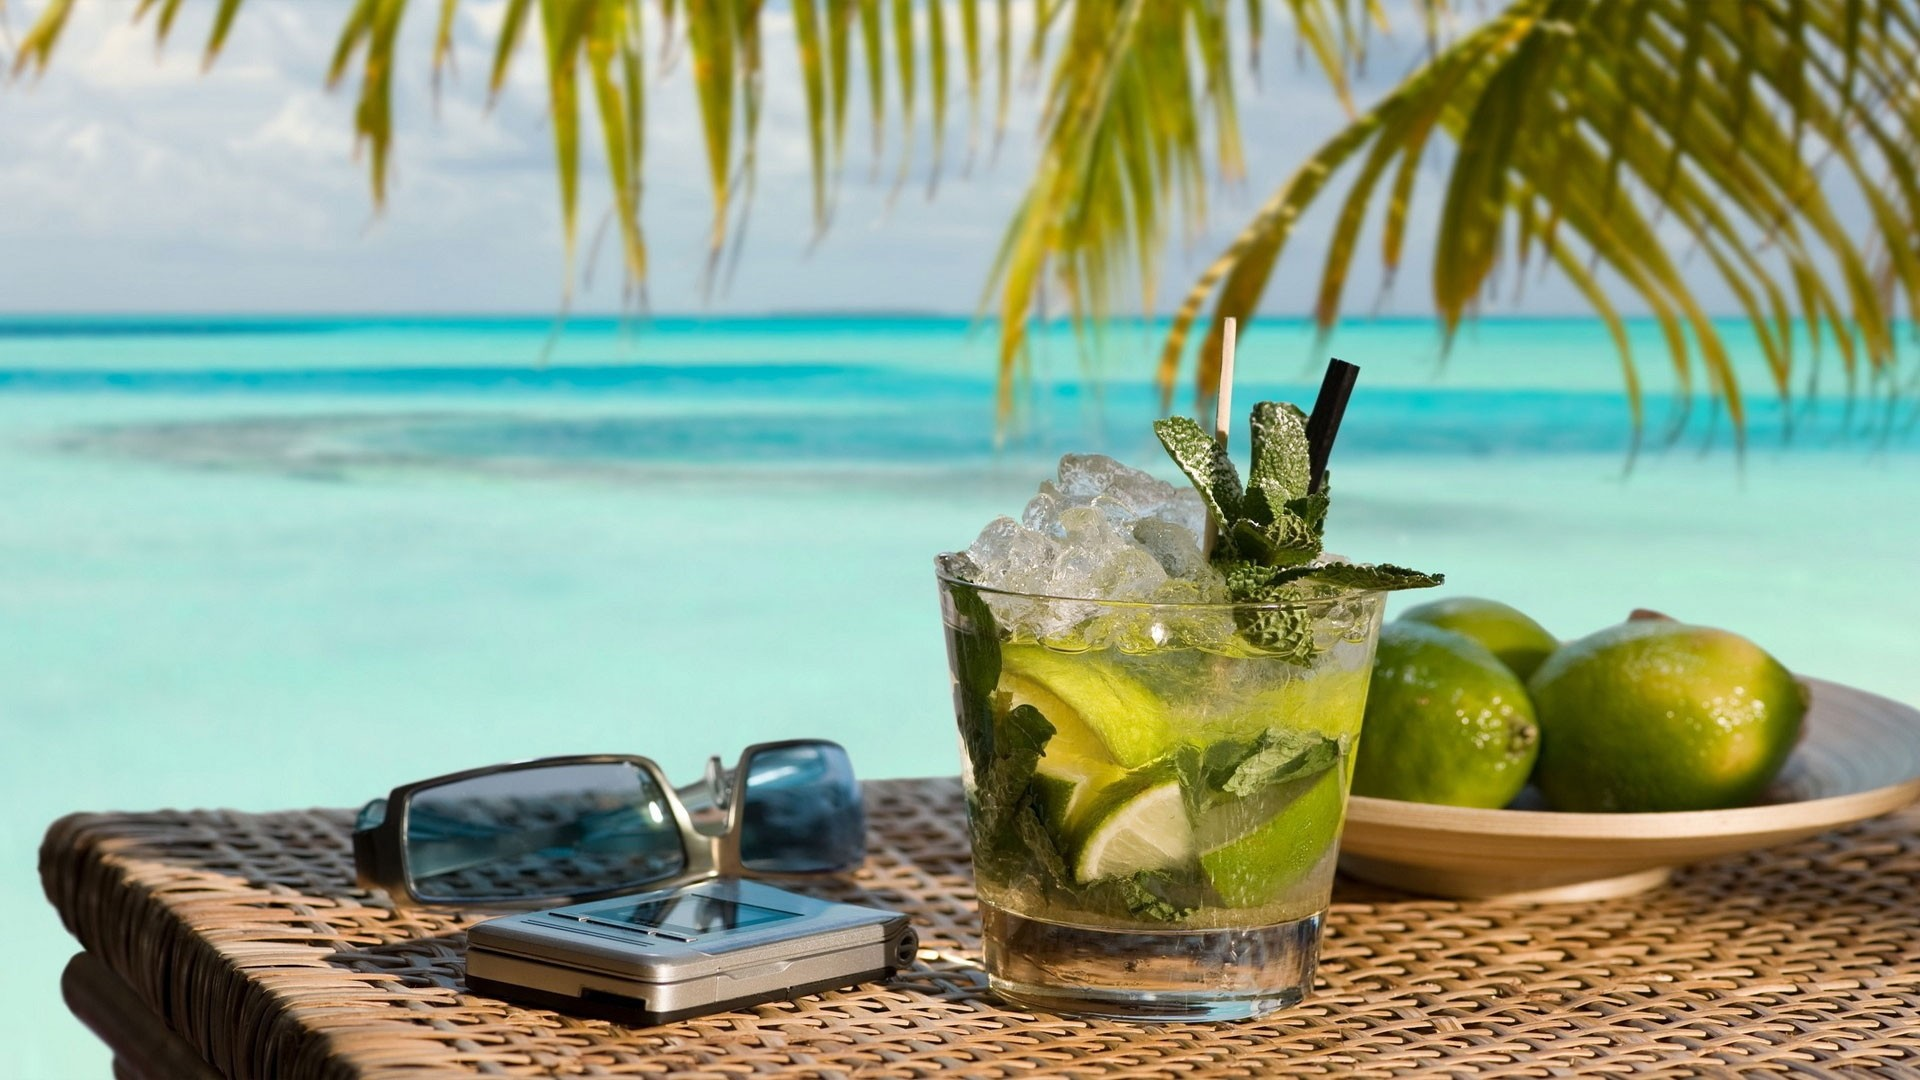 Wallpaper mojito, cocktail, phone, points, beach